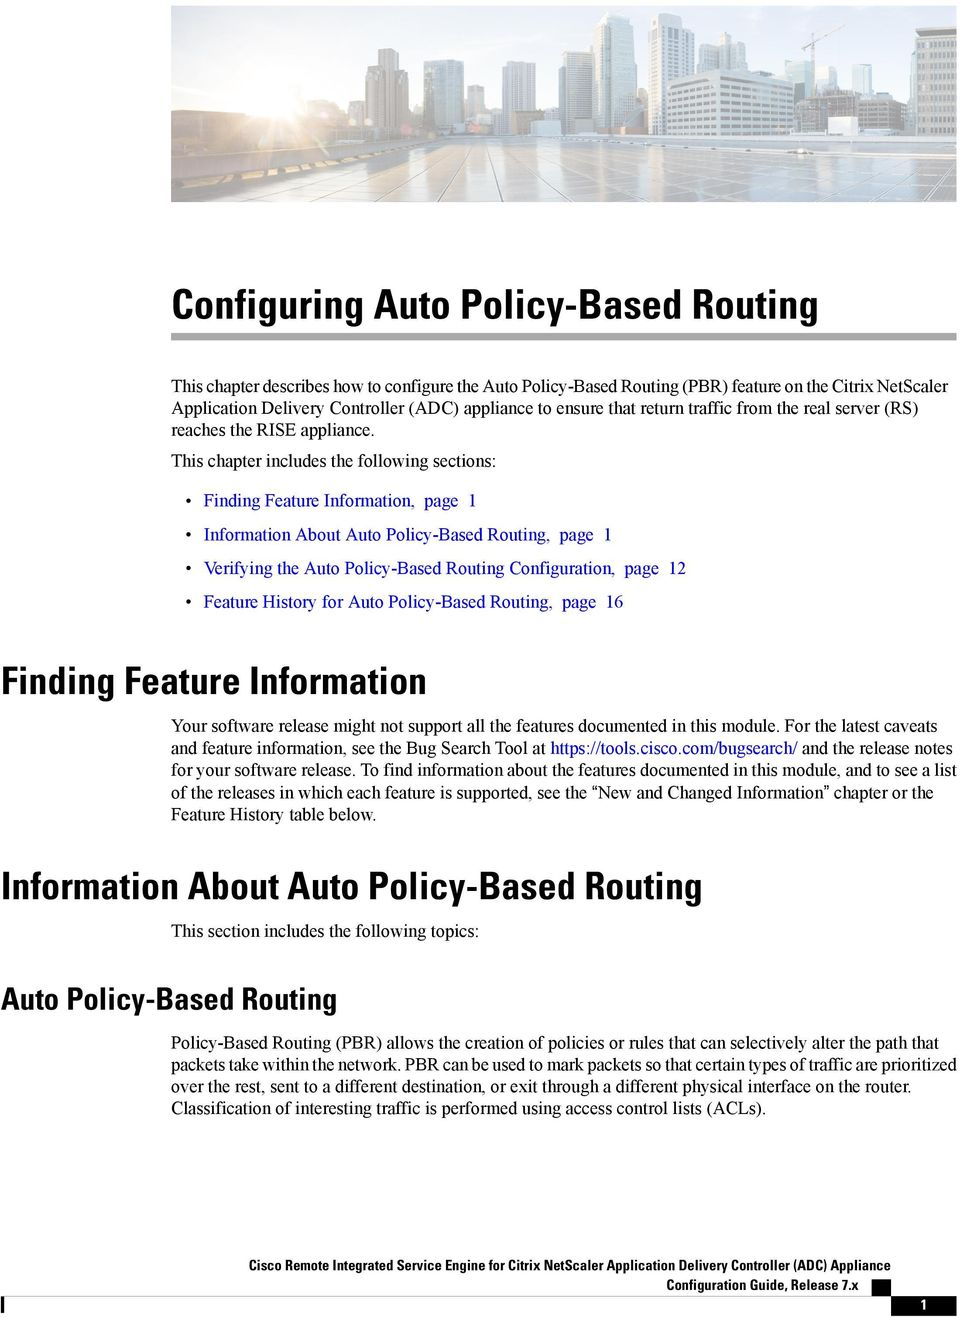 This chapter includes the following sections: Finding Feature Information, page 1 Information About Auto Policy-Based Routing, page 1 Verifying the Auto Policy-Based Routing Configuration, page 12